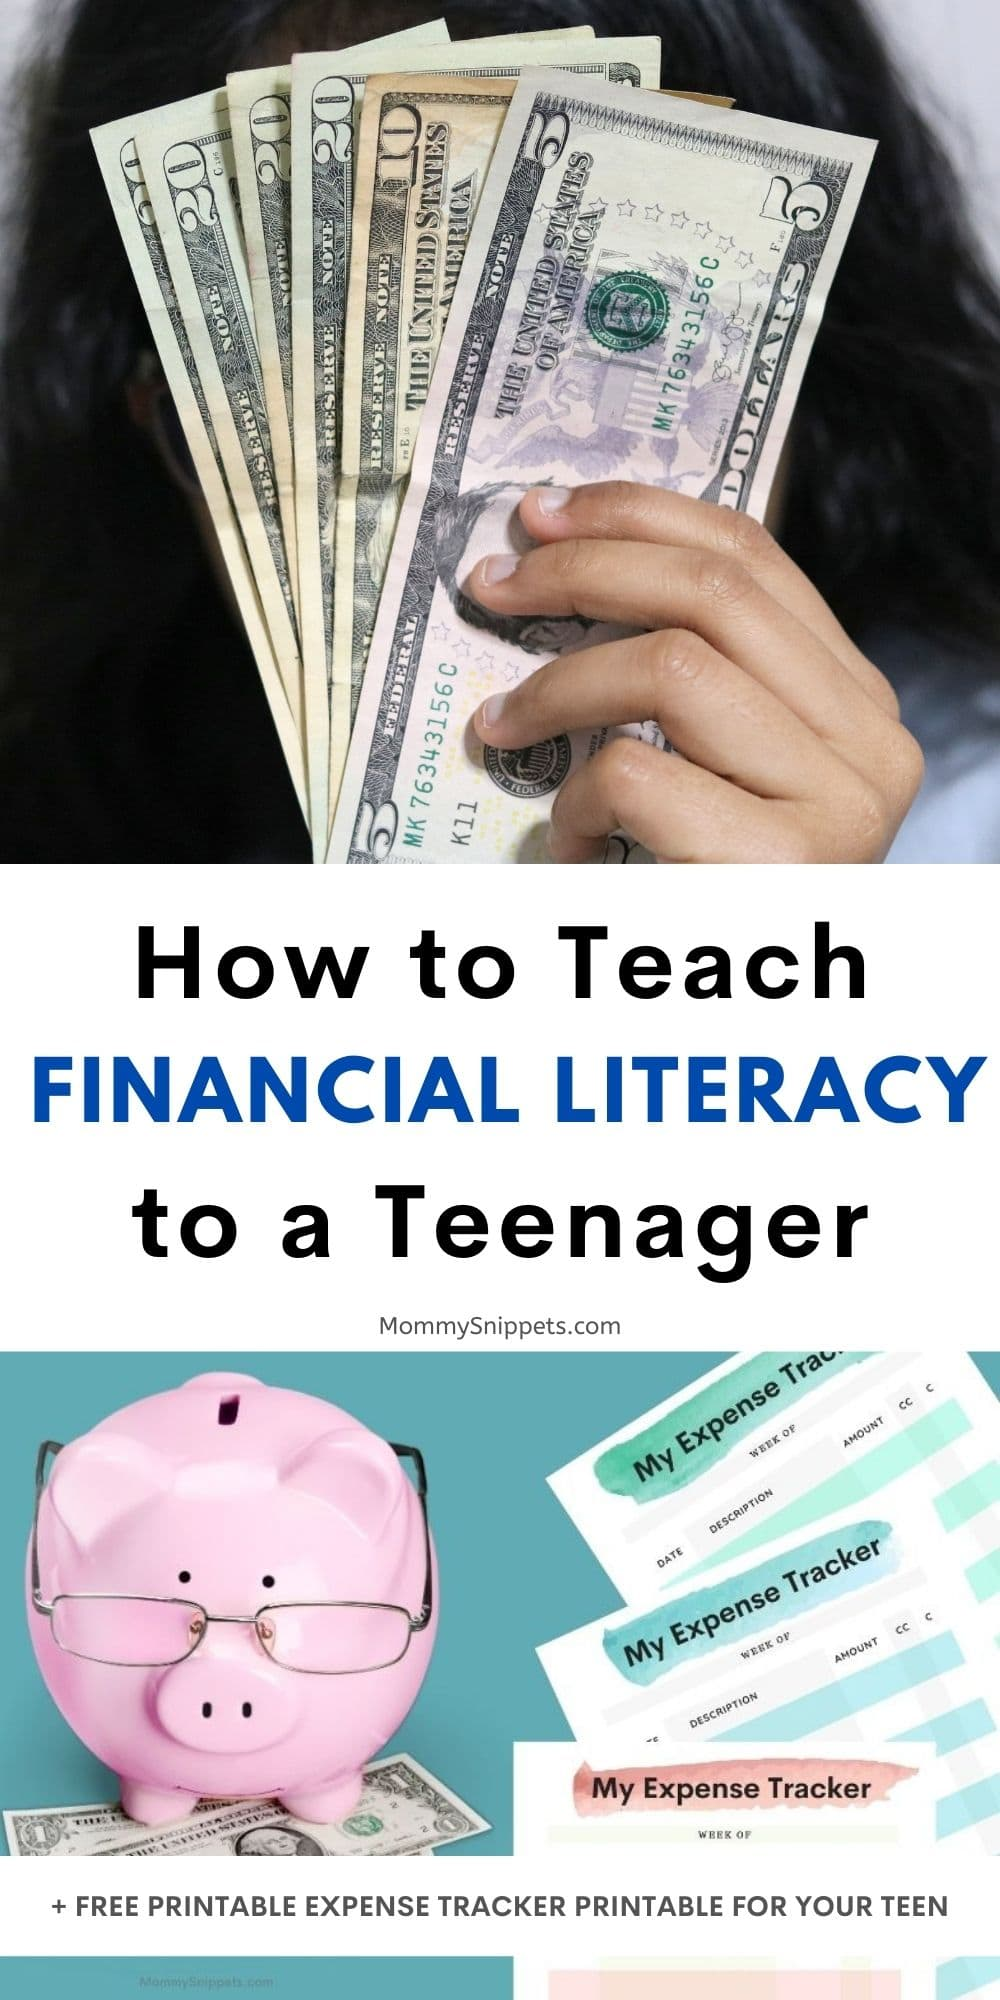 How to Teach Financial Literacy to a Teenager